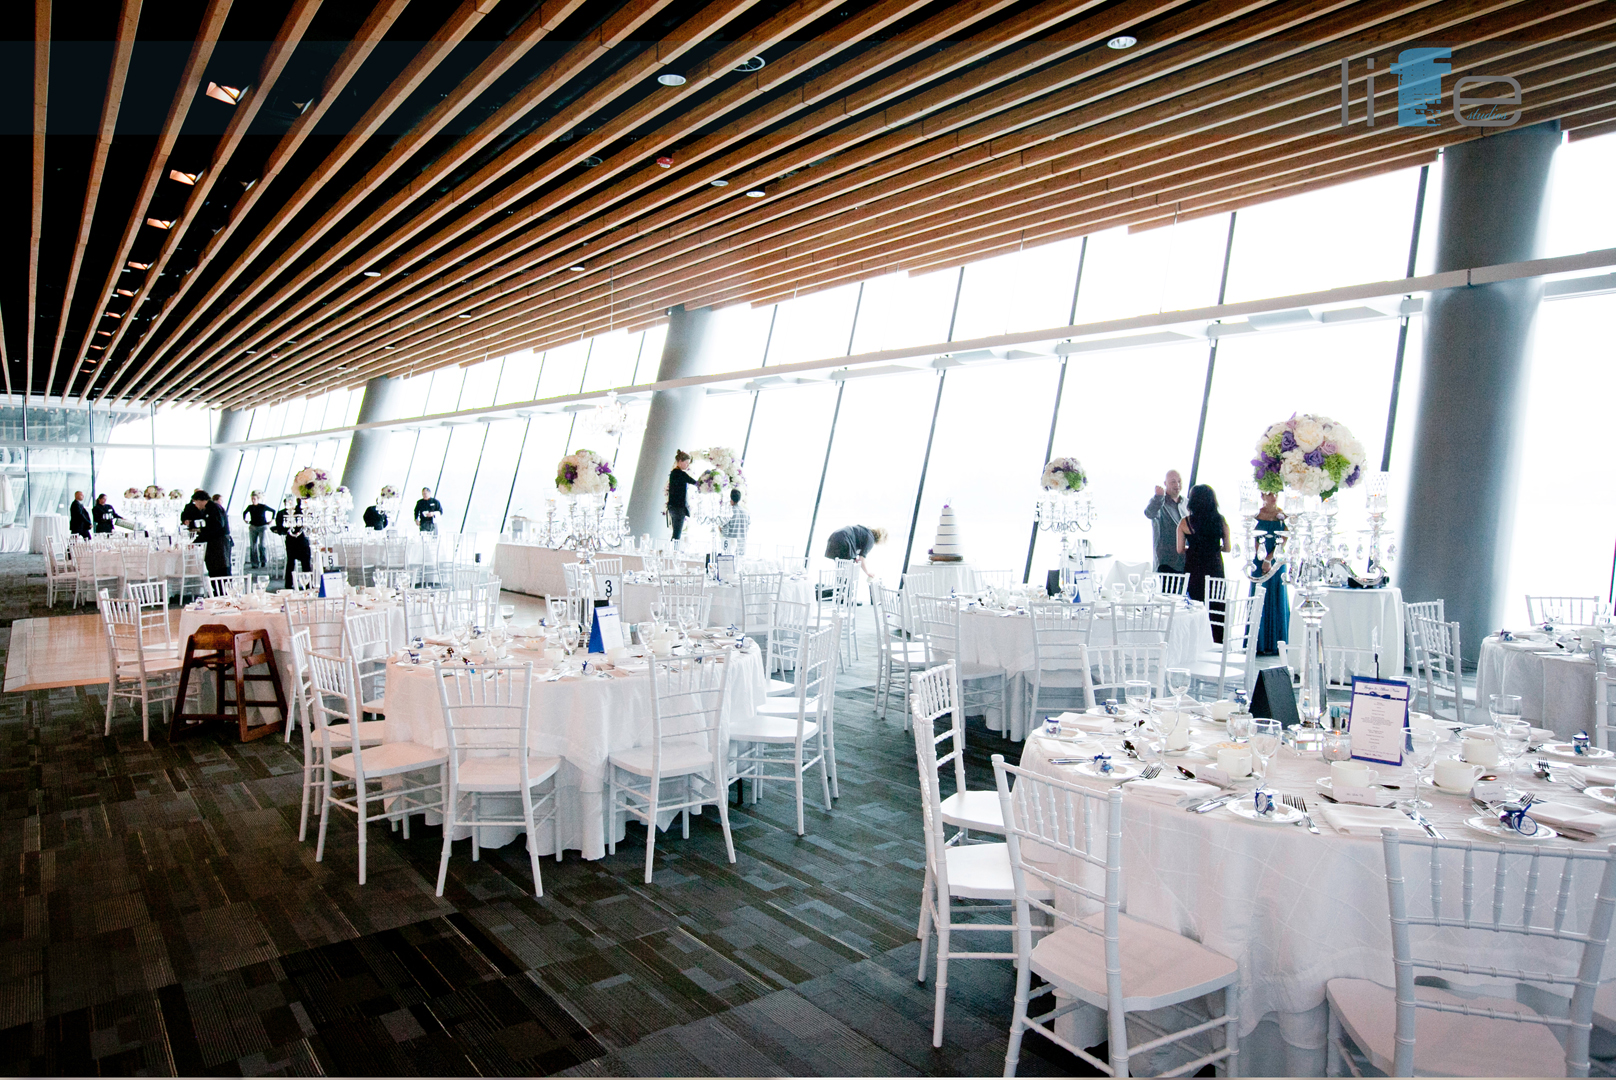 Vancouver Wedding Photographer Jerlyn and Albert Wedding Photography at Vancouver Convention Centre by Life Studios Inc.